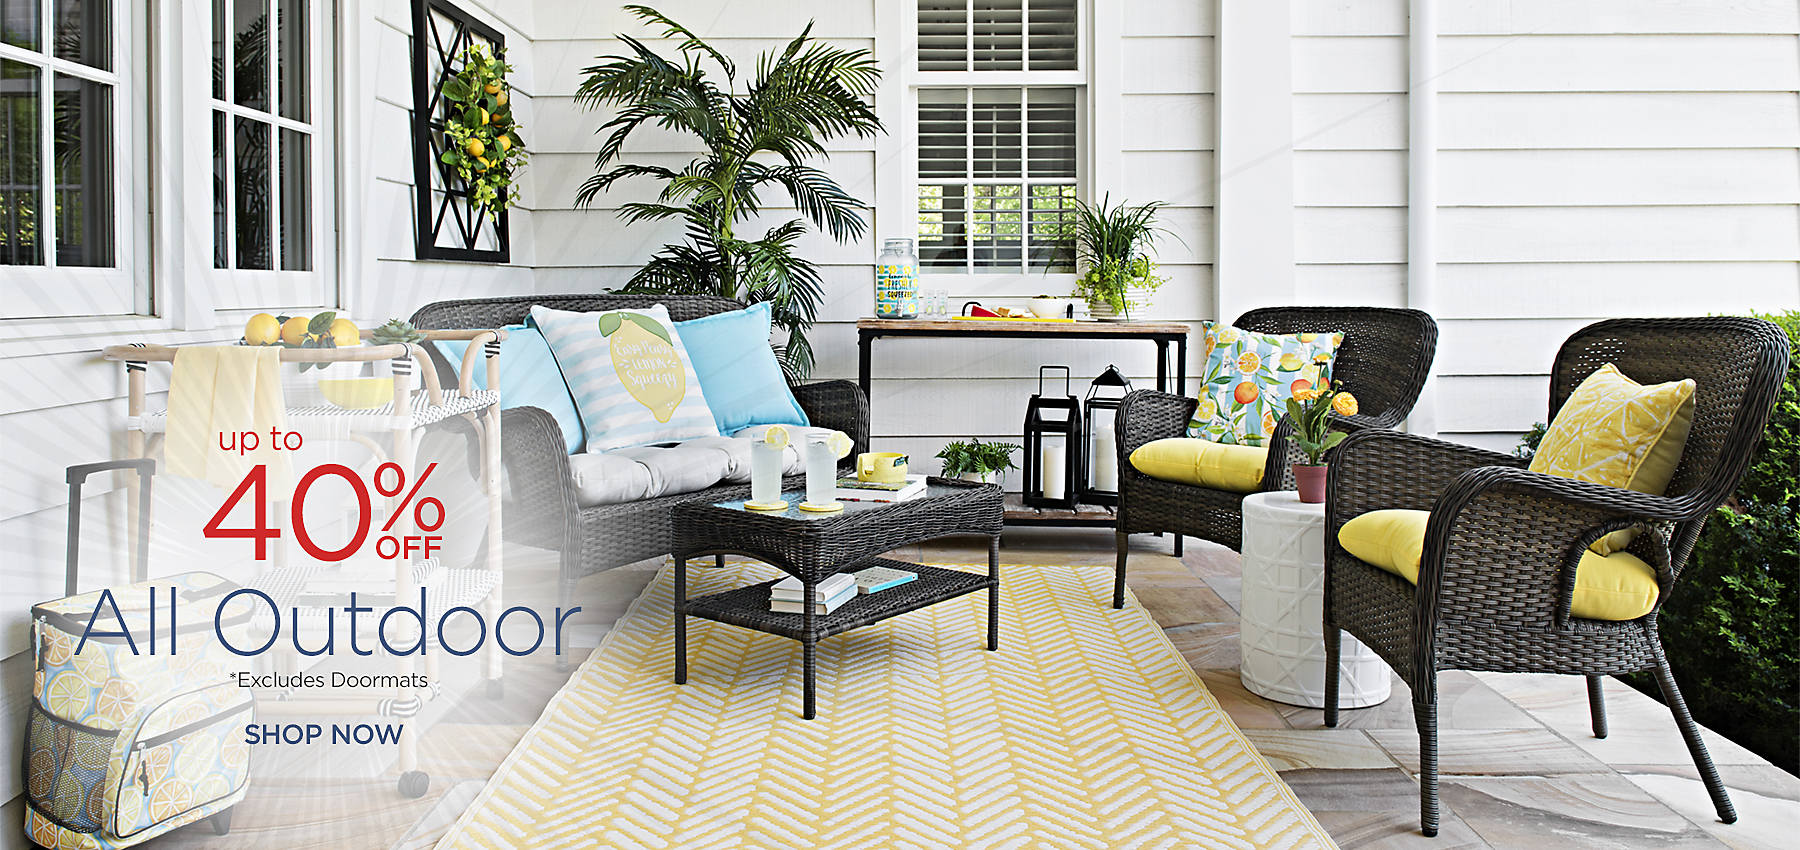 Up to 40% Off All Outdoor - Excludes Doormats - Shop Now